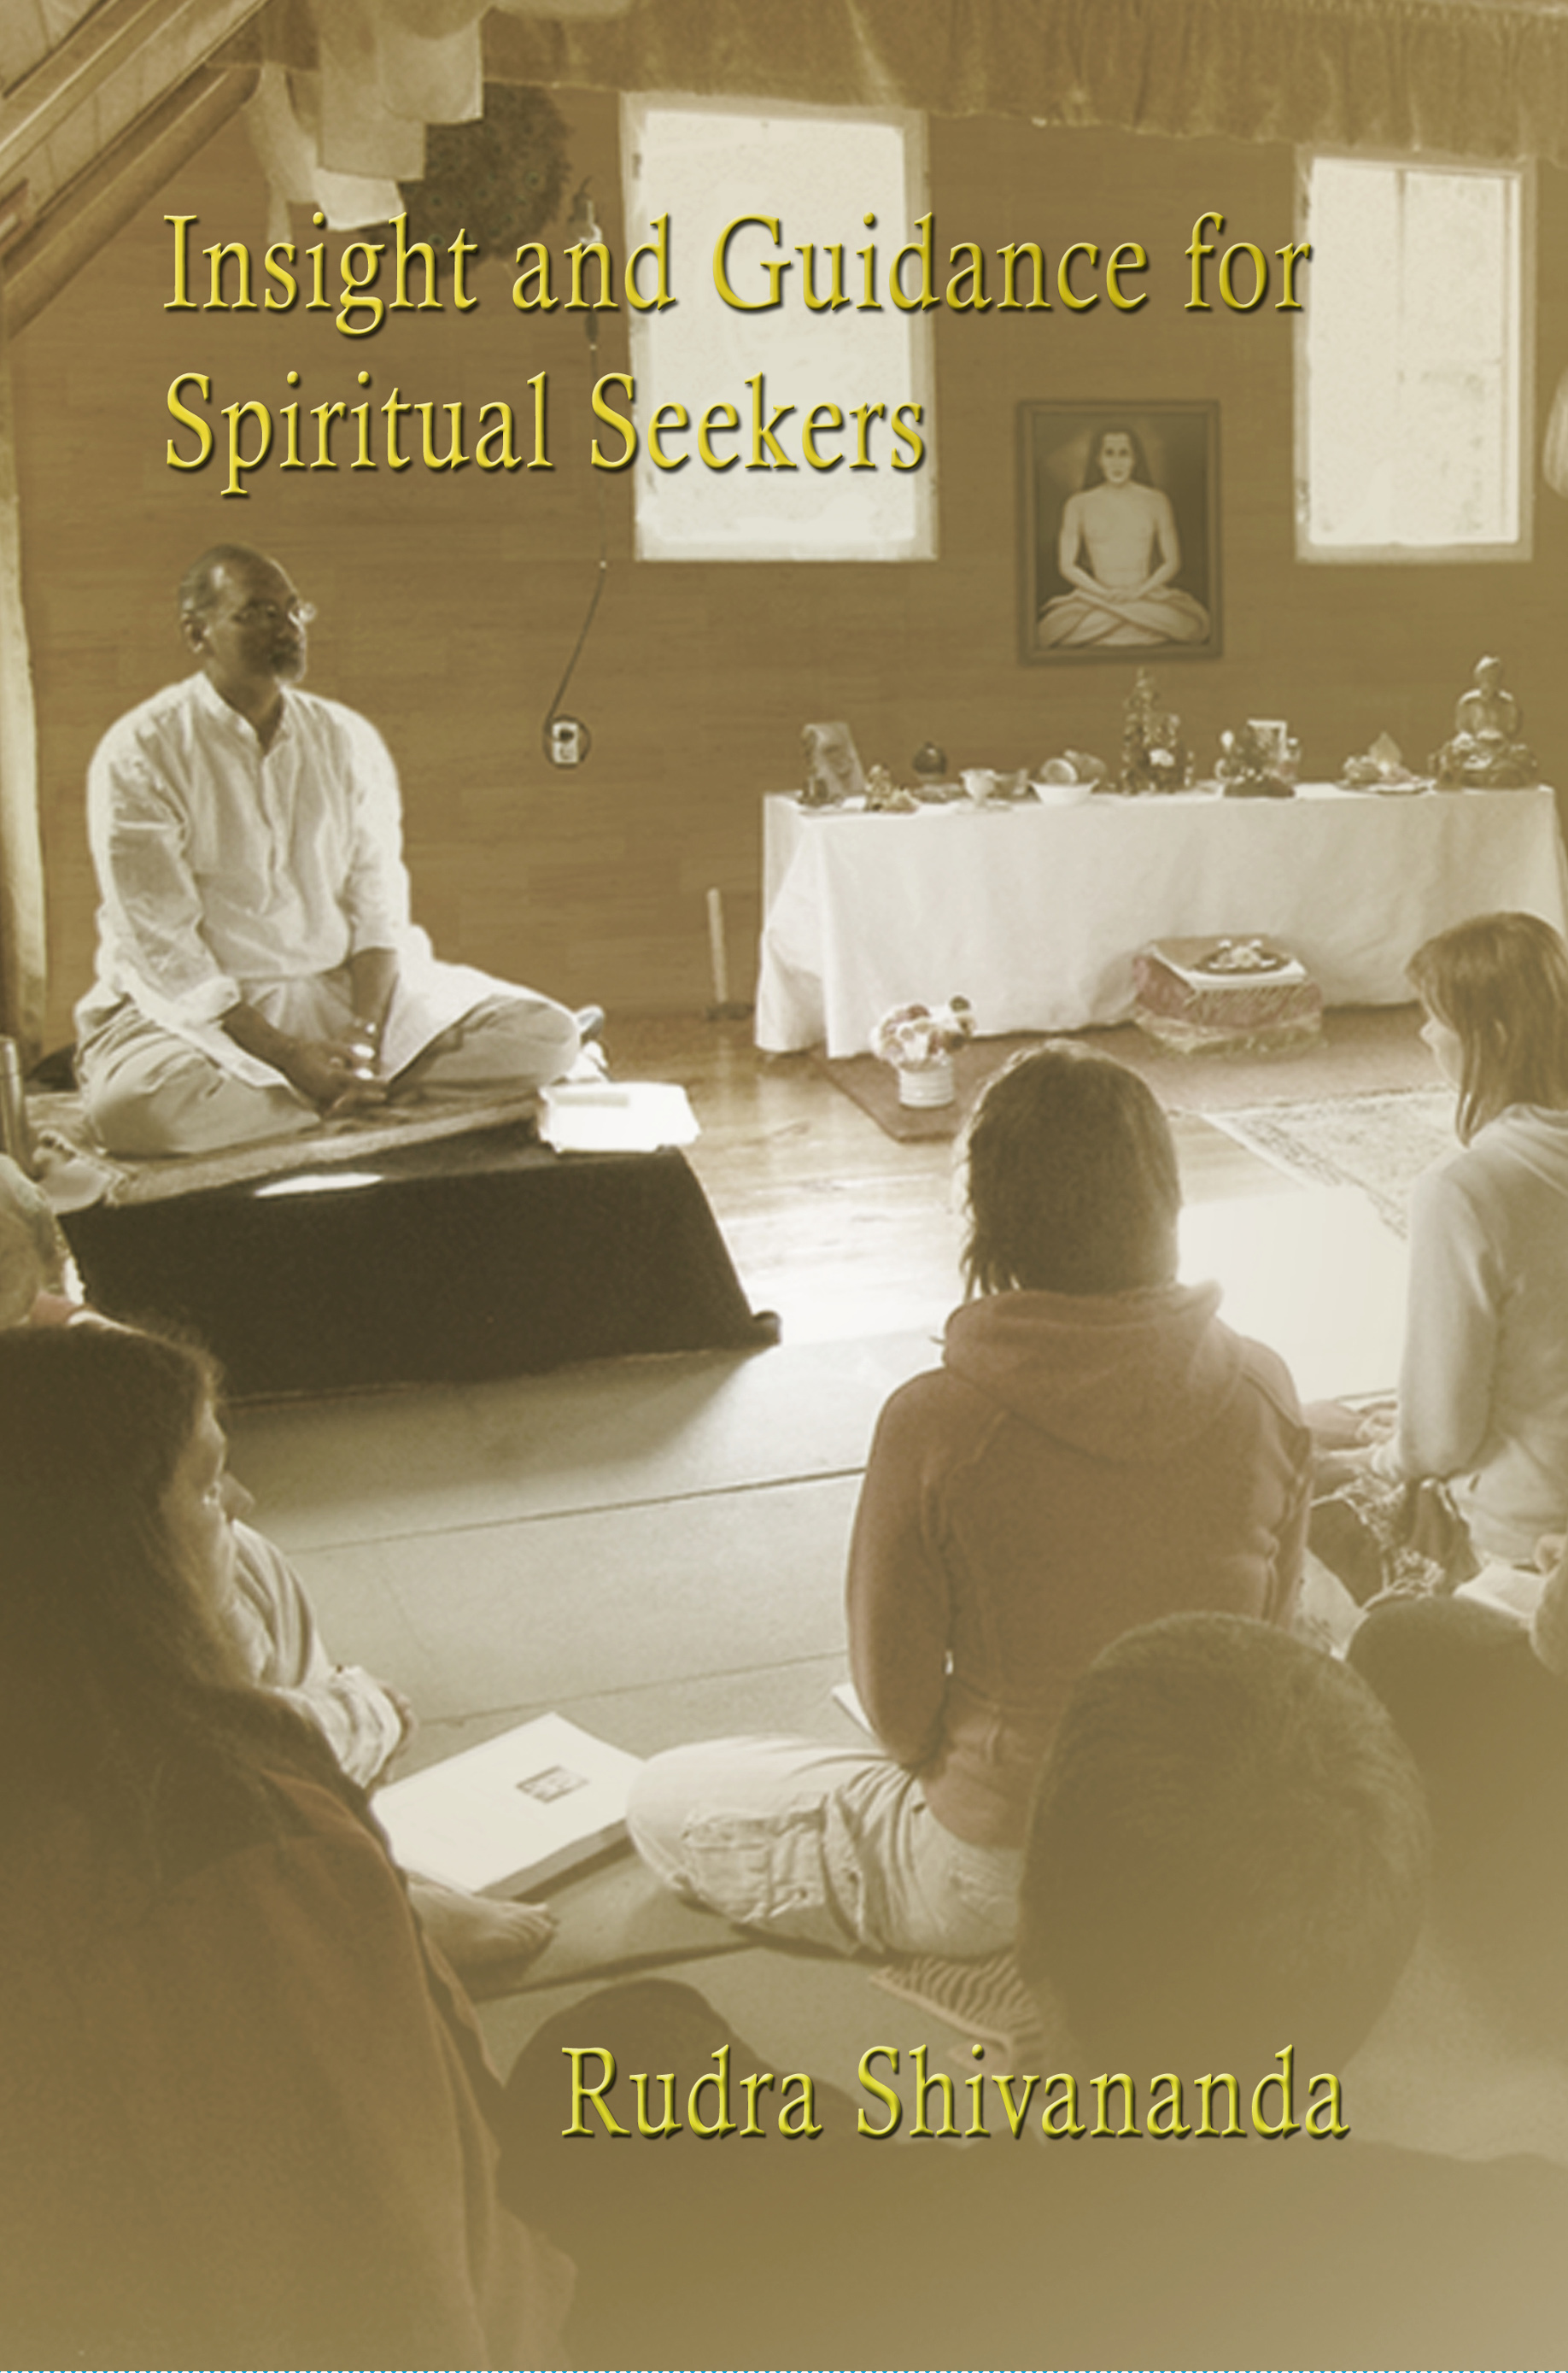 Insight and Guidance for Spiritual Seekers (pdf download)